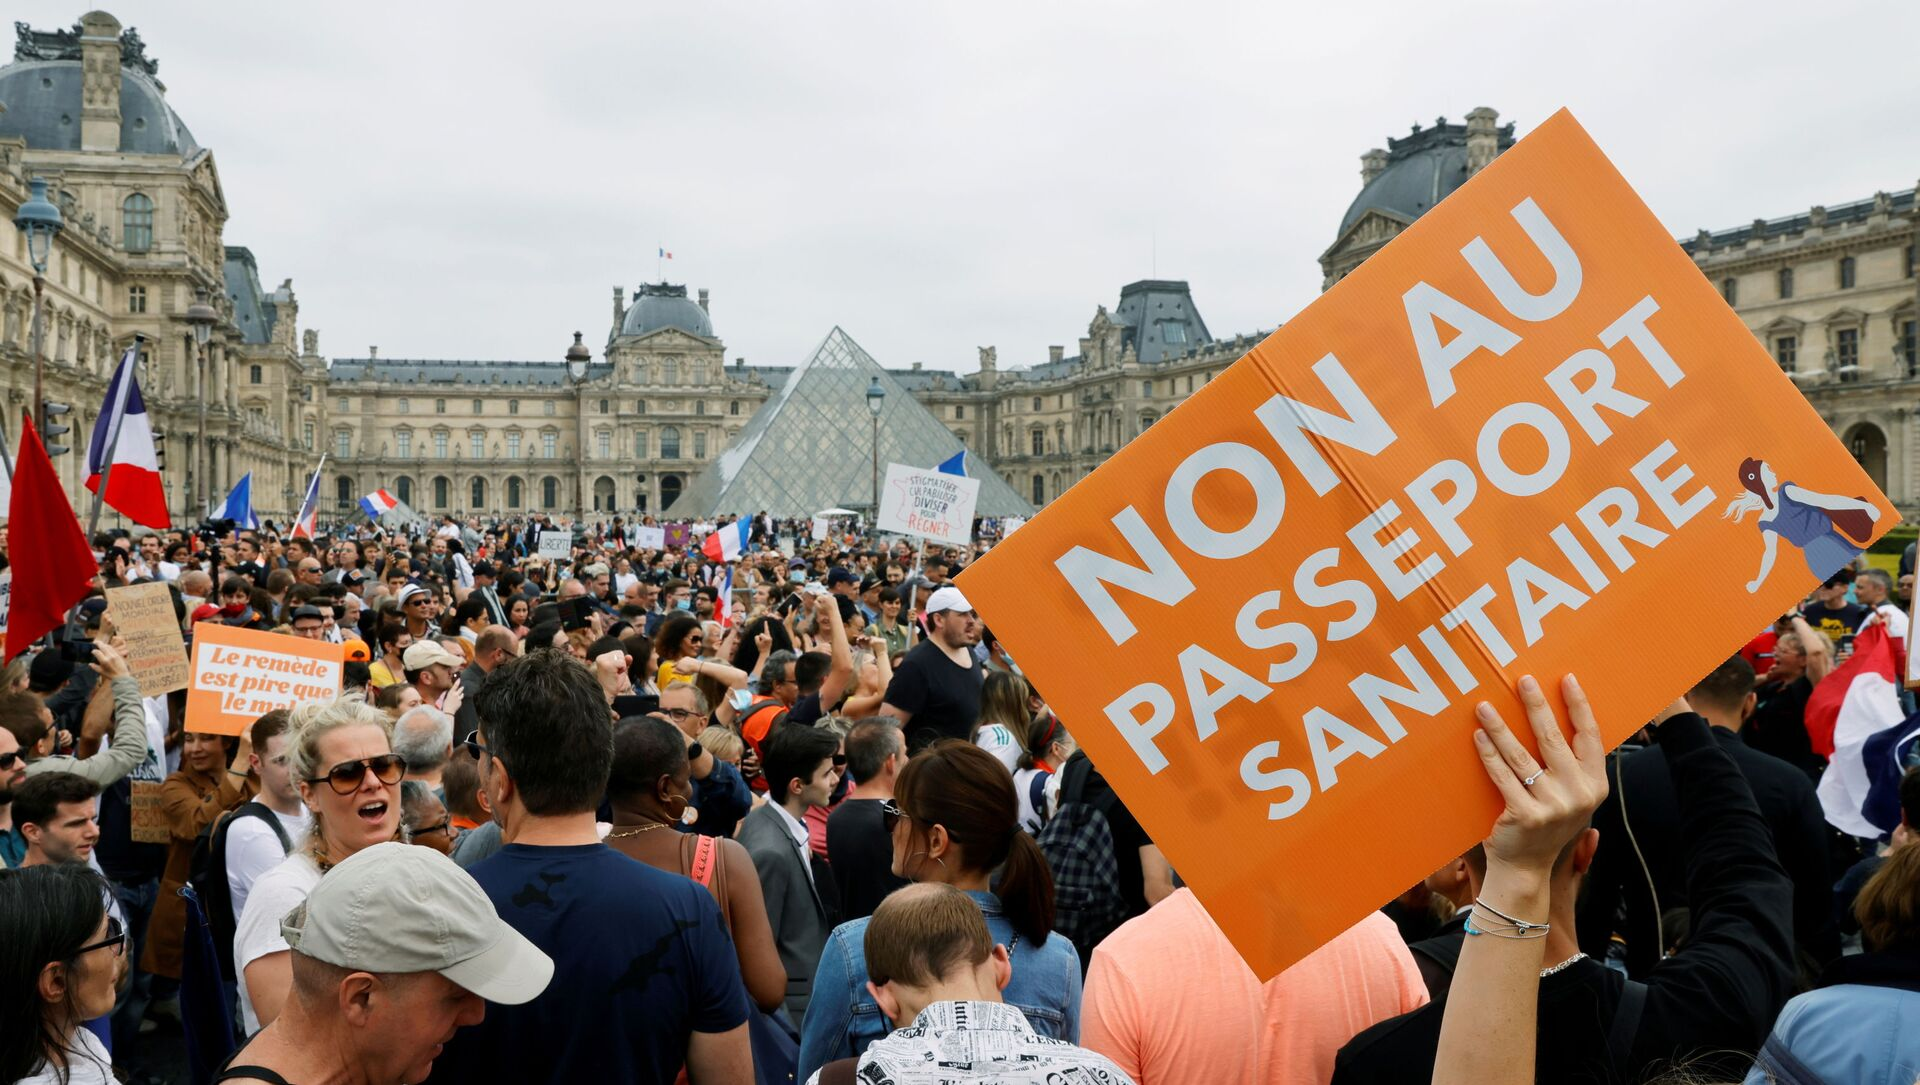 Demonstrators attend a protest against the new measures announced by French President Emmanuel Macron to fight the coronavirus disease (COVID-19) outbreak, in Paris, France, July 17, 2021. - Sputnik International, 1920, 28.07.2021